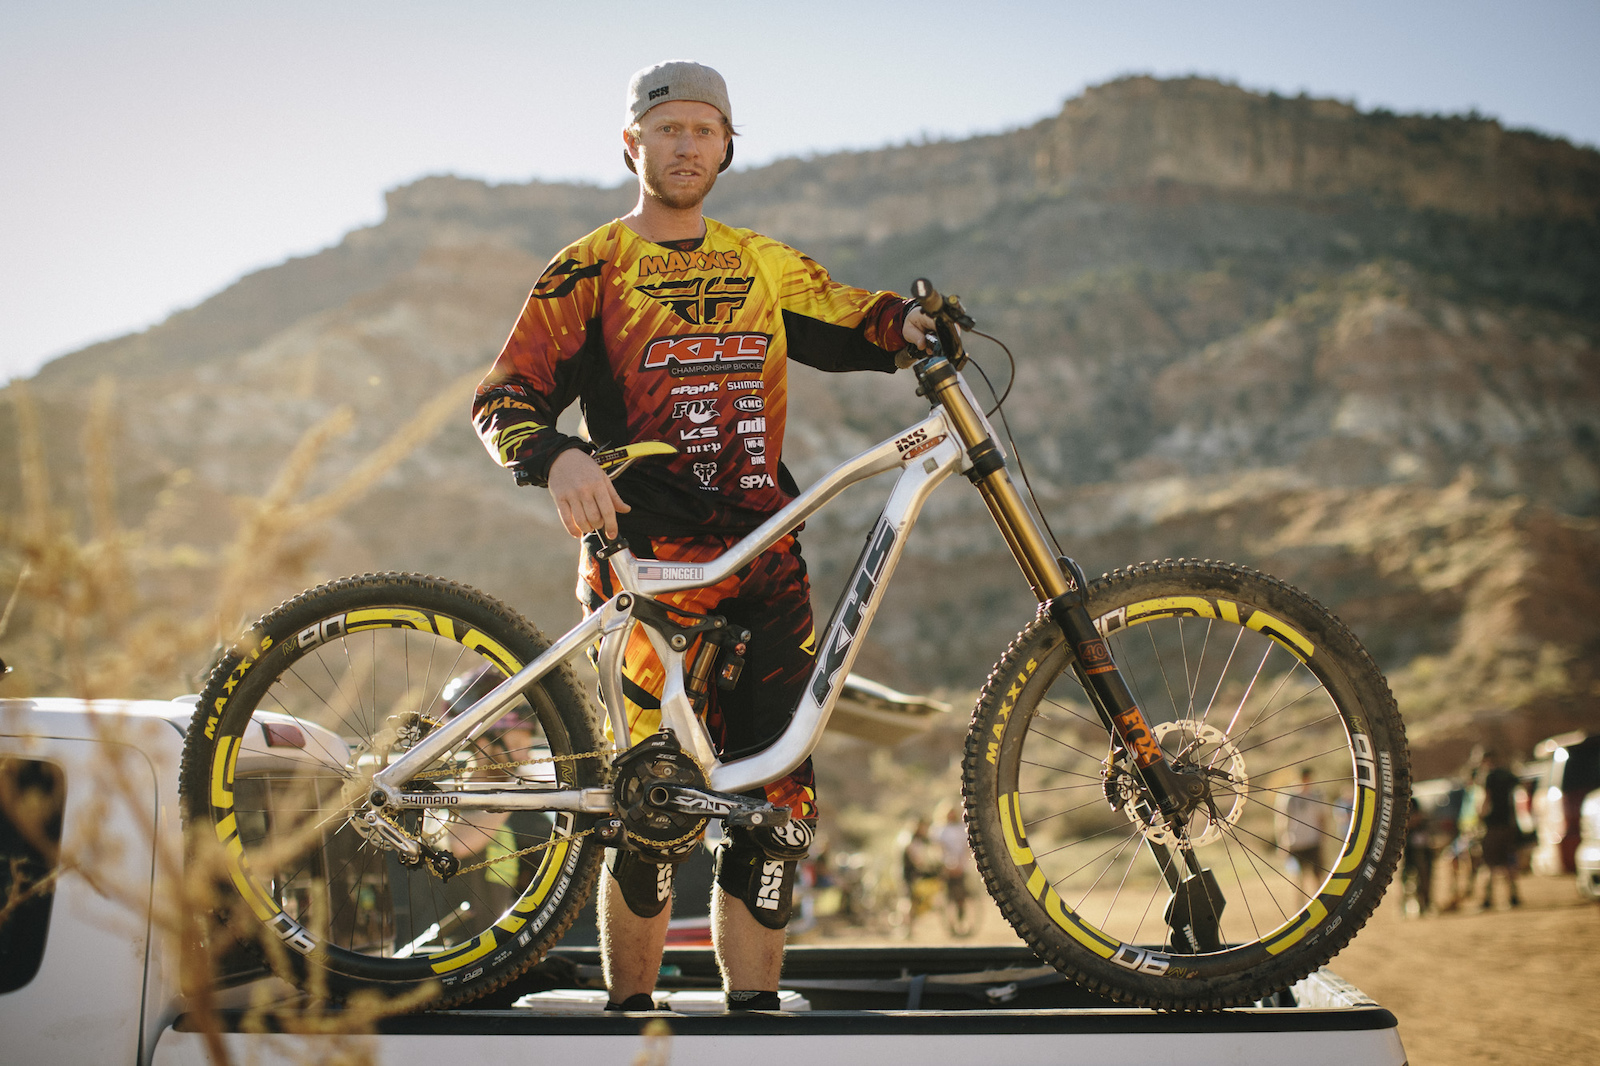 Logan Binggeli at RedBull Rampage 2015 Virgin Utah USA